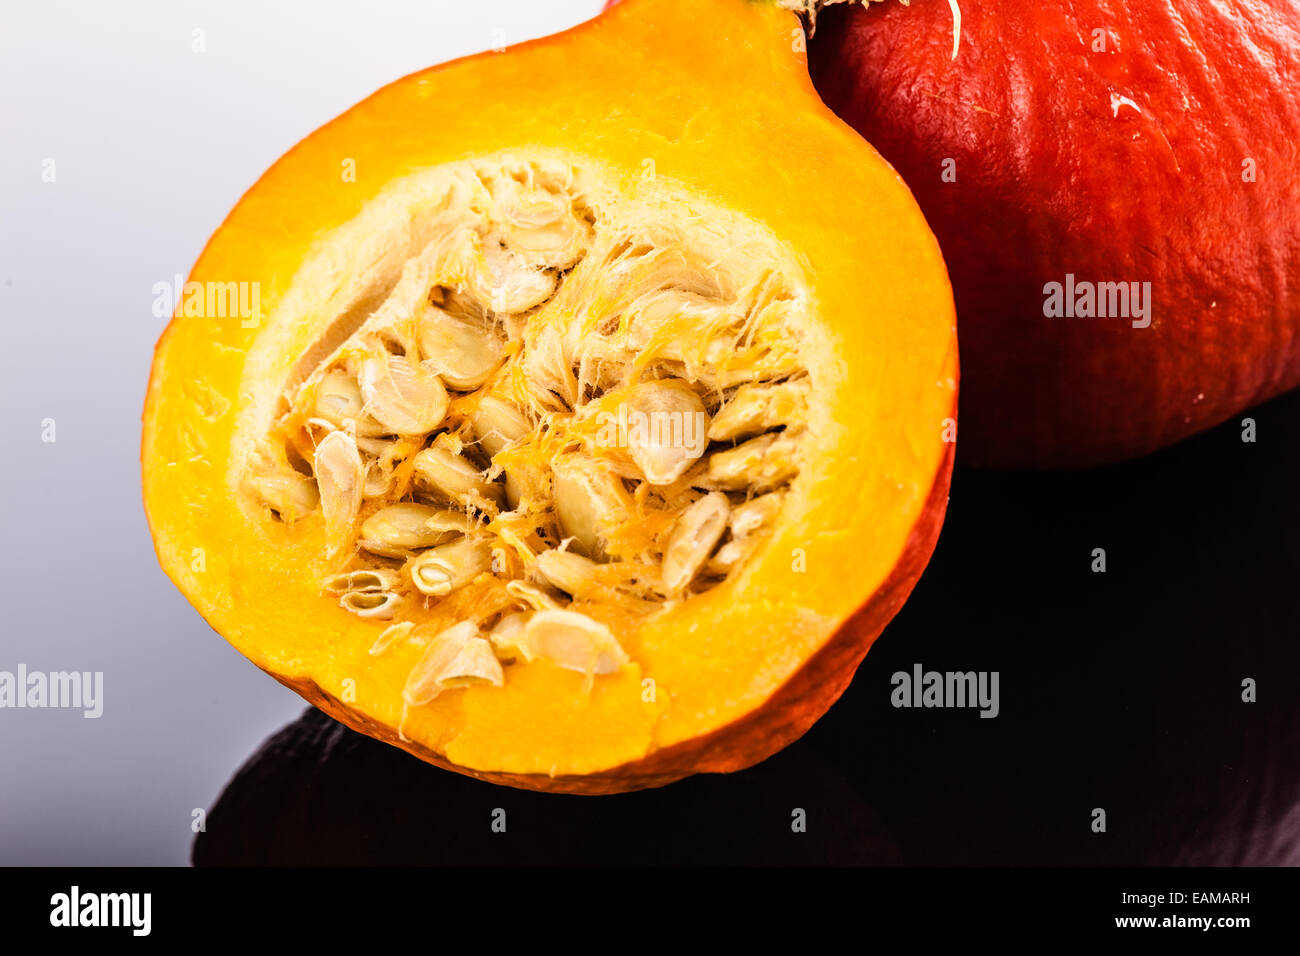 Half Red kuri squash, a small japanese  pumpkin with reflection over a glass background Stock Photo